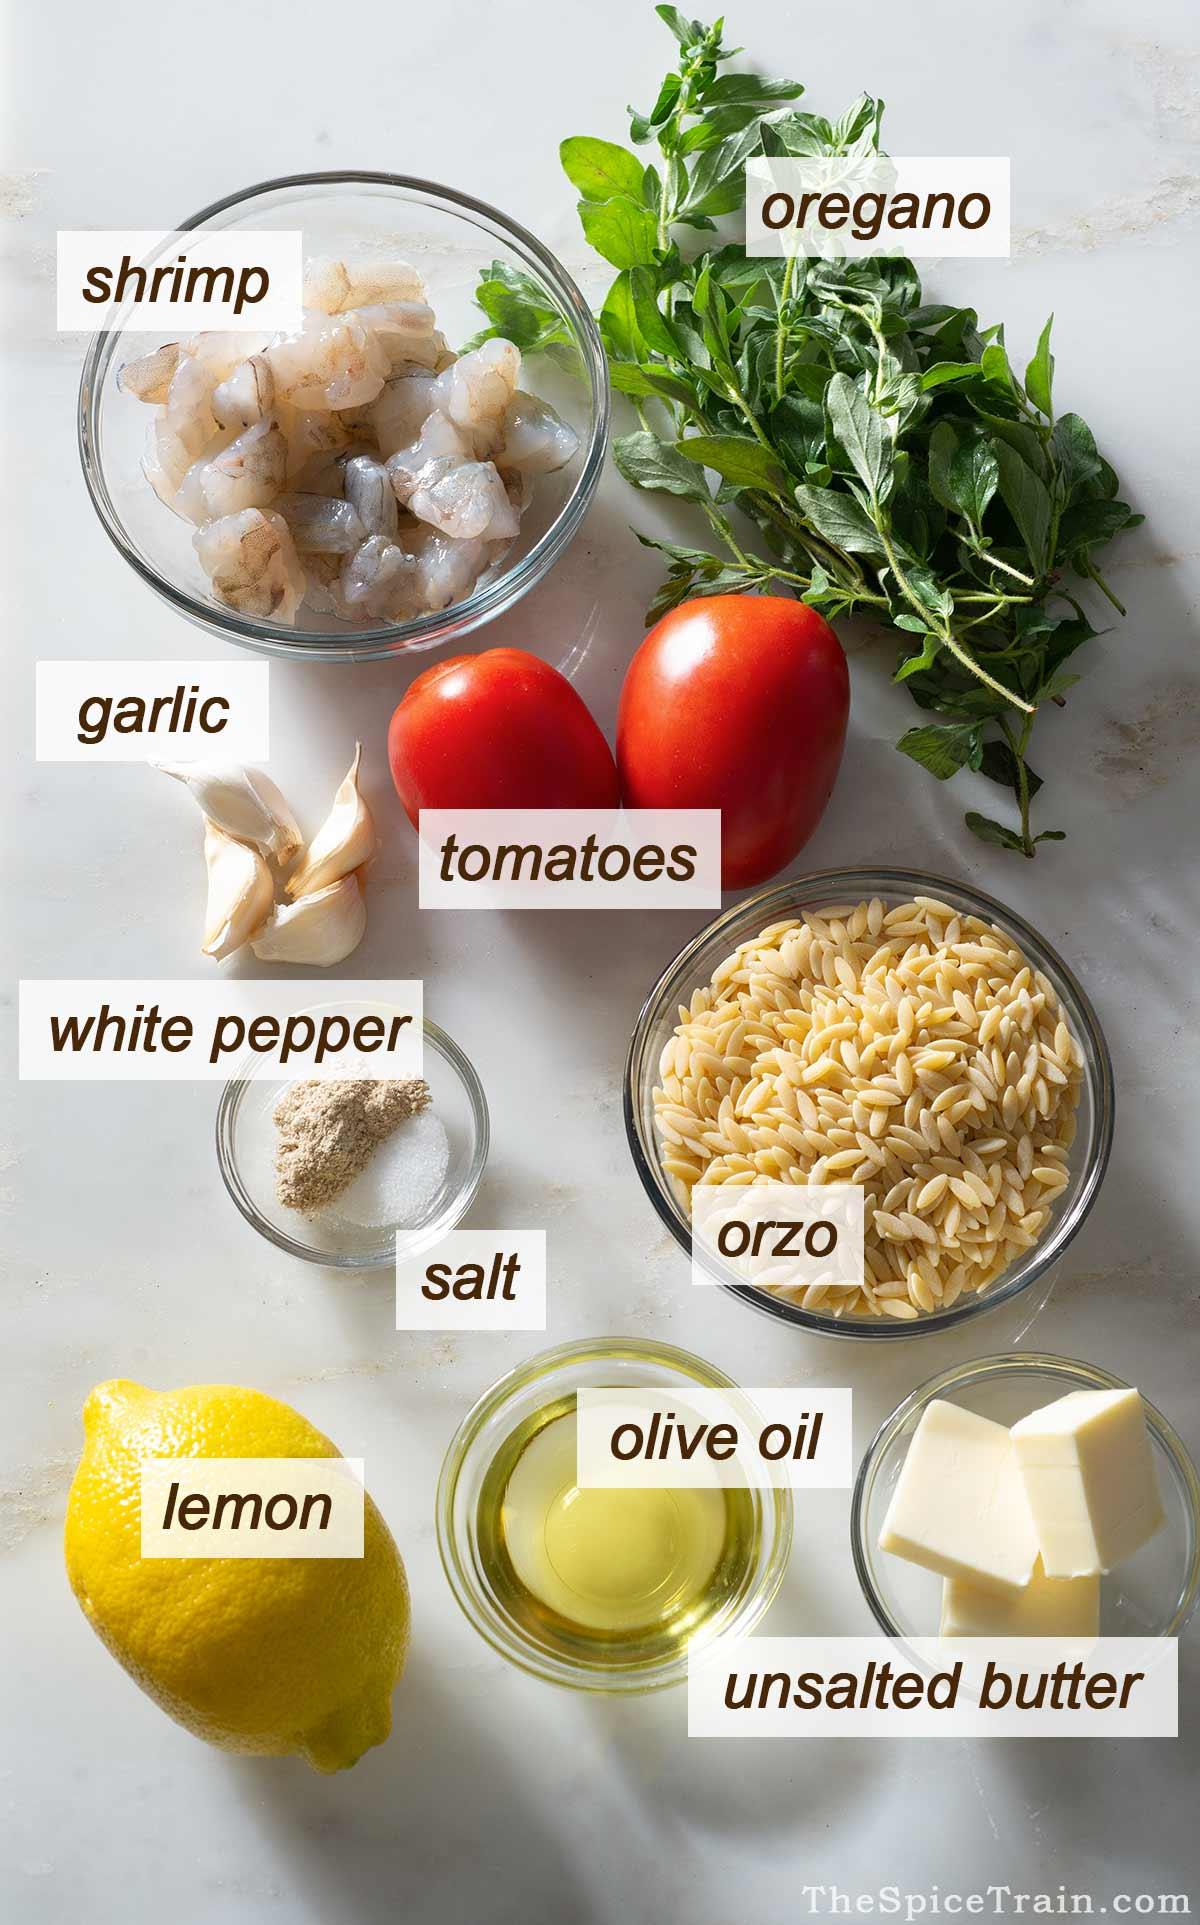 Orzo shrimp scampi ingredients on a kitchen counter.